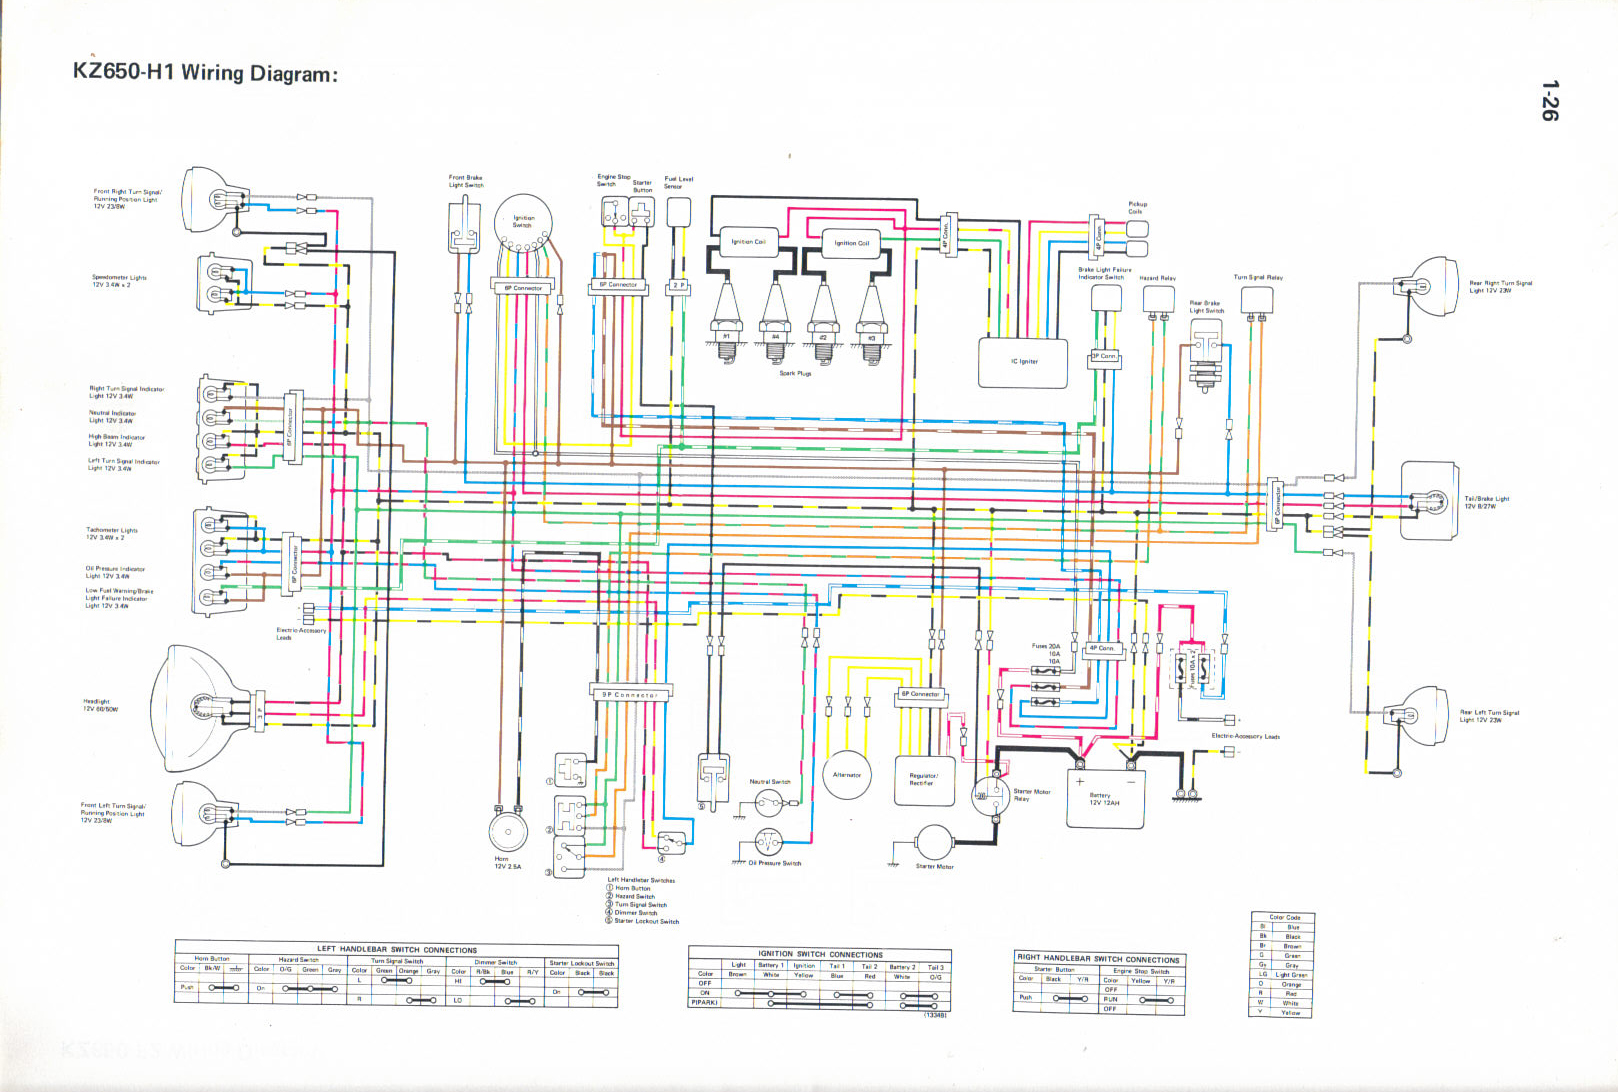 KZ650 H1 kawasaki h1 wiring diagram kawasaki wiring diagrams instruction ex500 wiring diagram at mifinder.co